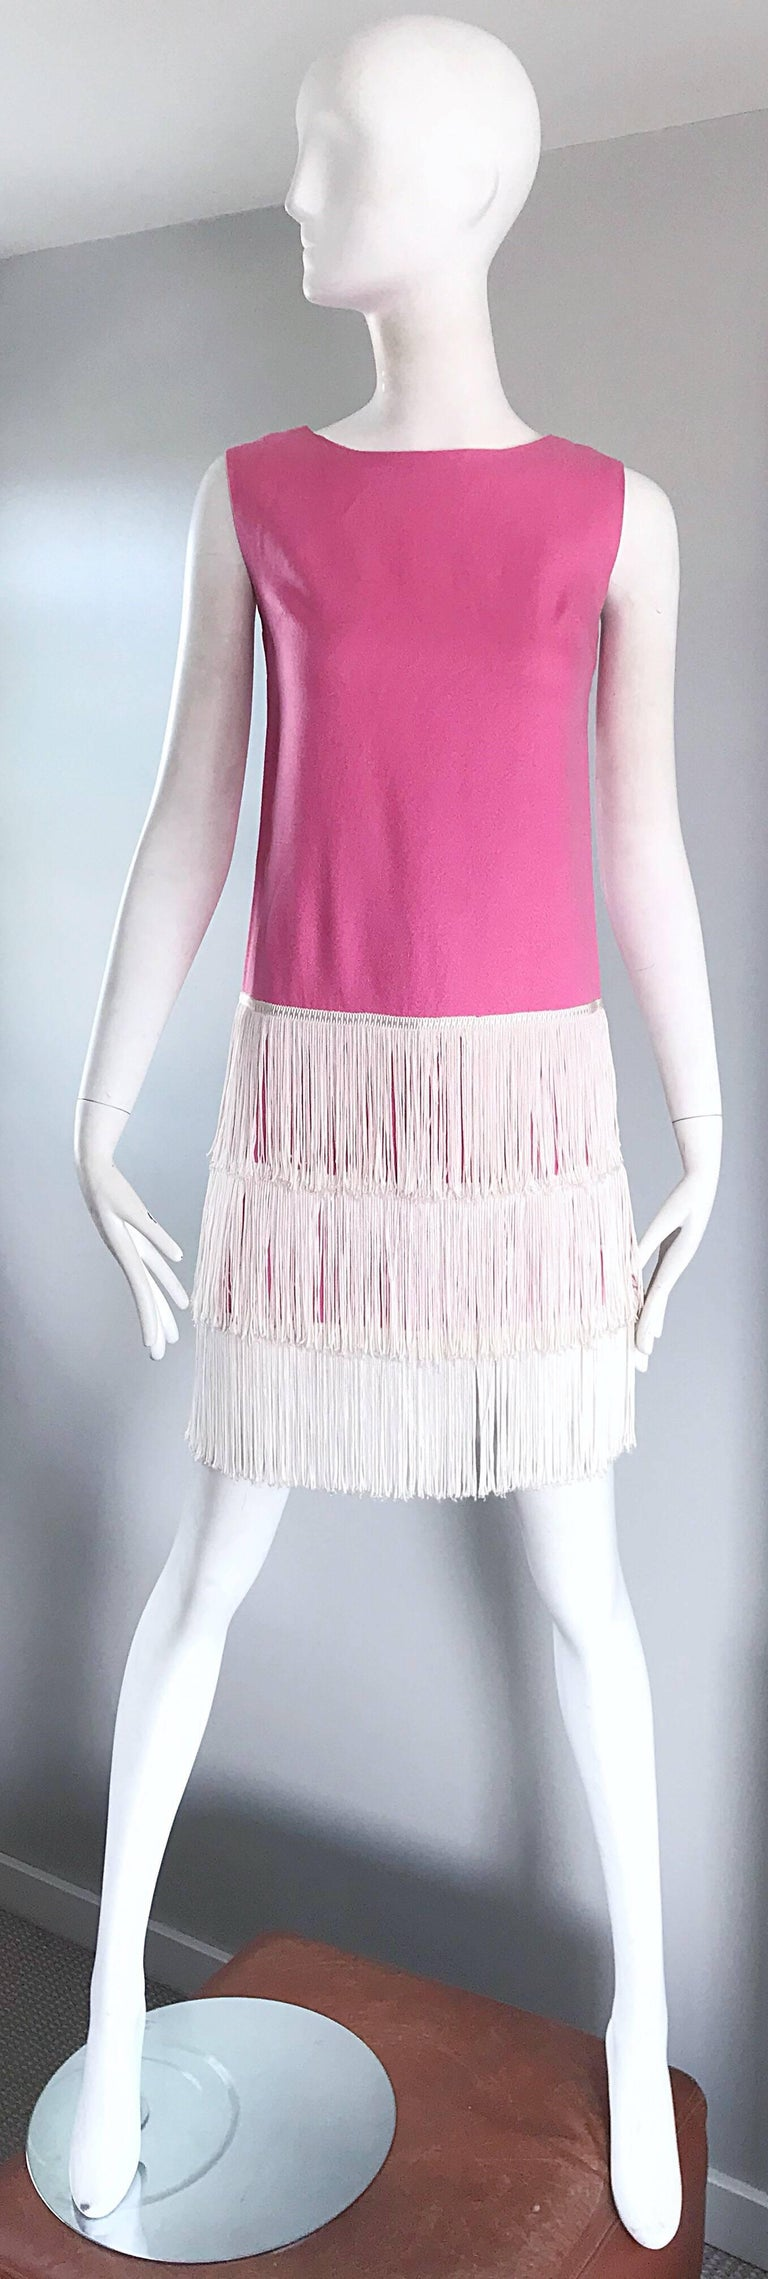 Amazing 60s does 20 bubblegum pink and white sleeveless flapper style fringed flapper style shift dress! Soft textured cotton, with three tiers of white fringe at the hem. Full metal zipper up the back with hook-and-eye closure. Very well made, with